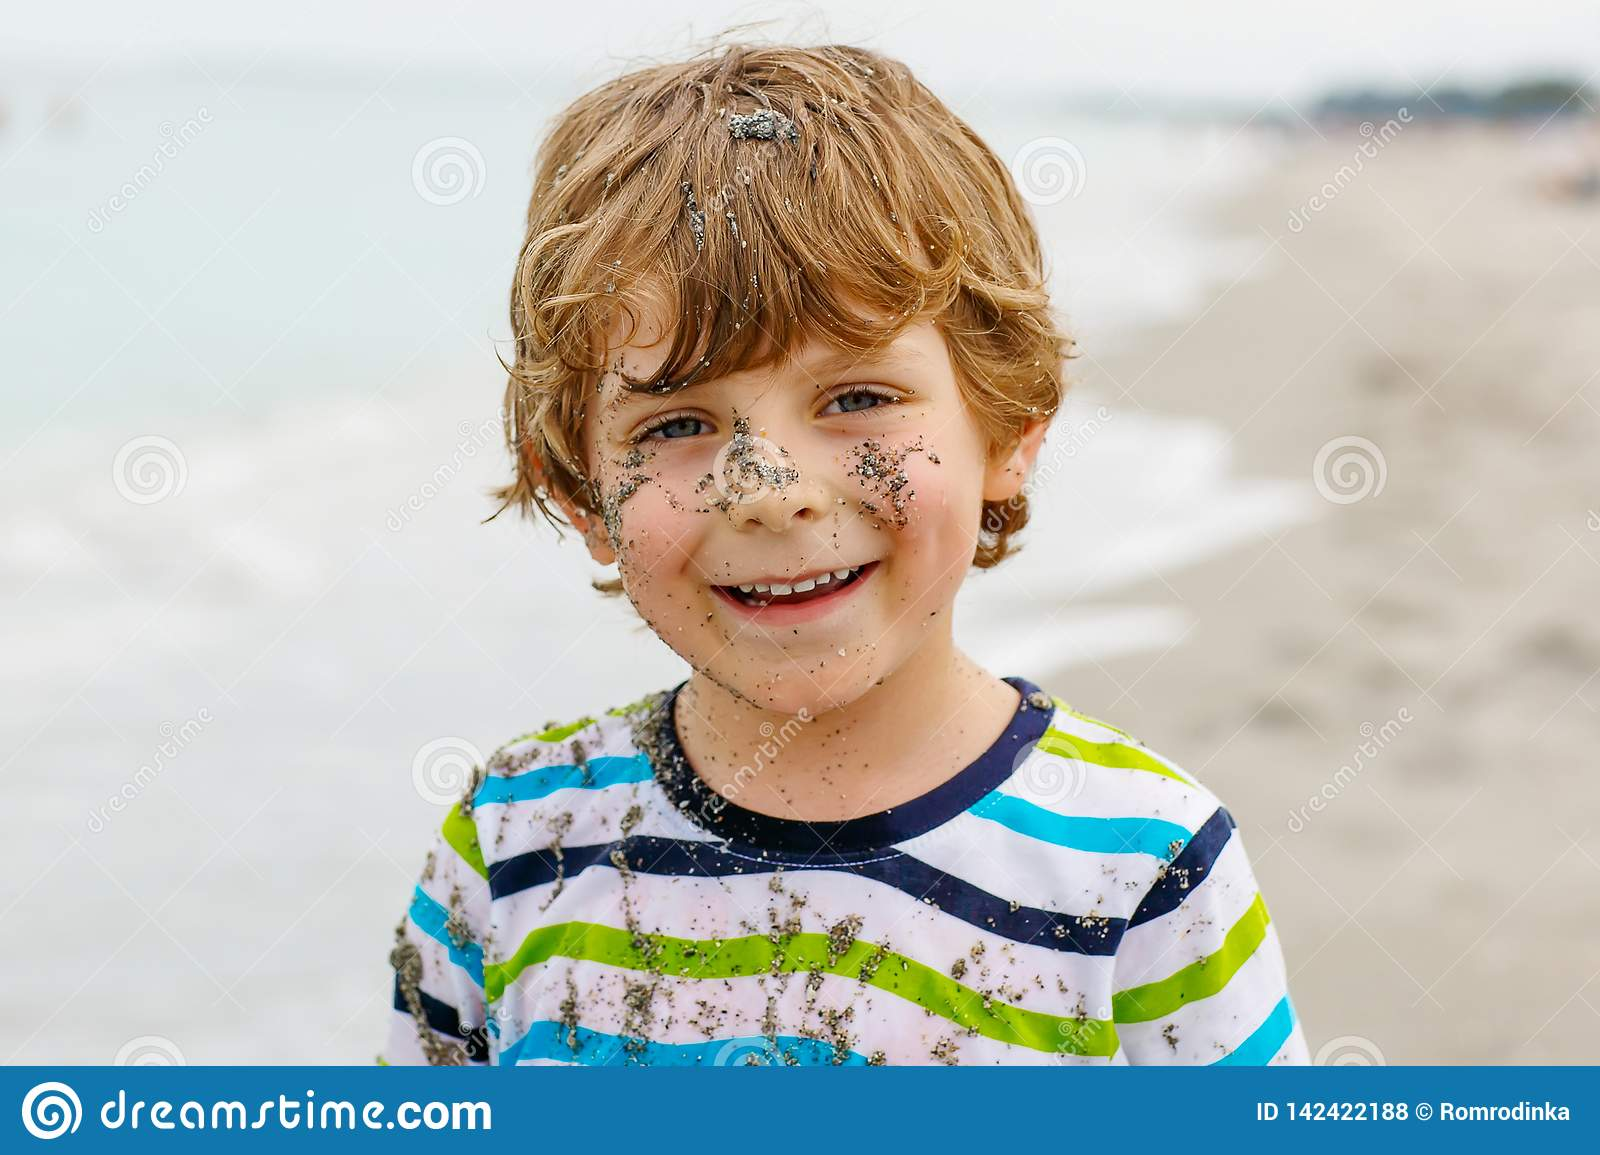 Adorable active little kid boy having fun on beach of North Sea in Germany. Happy cute child relaxing, playing and